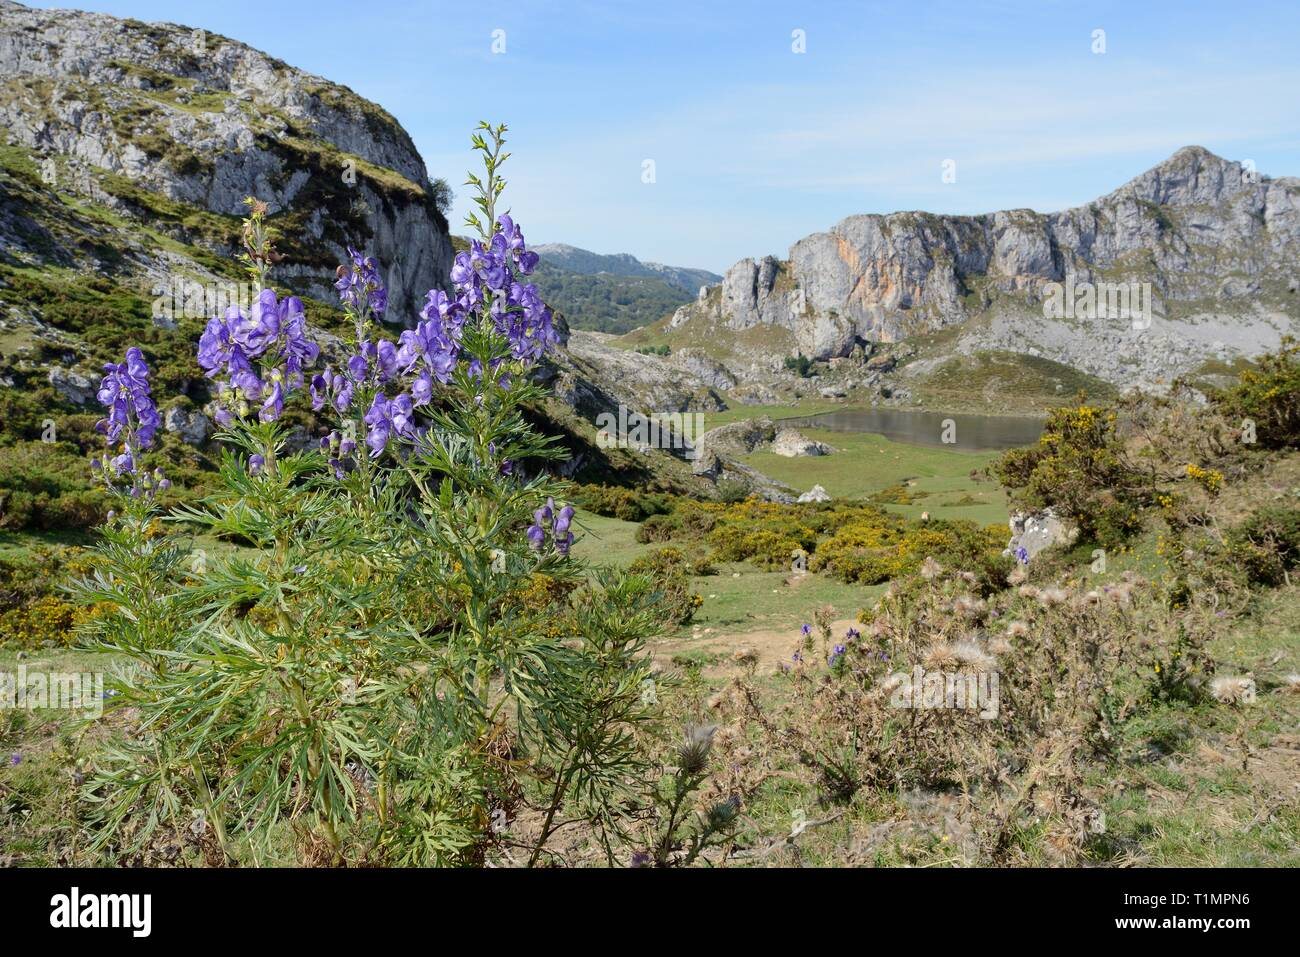 Monkshood (Aconitum napellus) flowering on montane pastureland above Lake Ercina, Lakes of Covadonga, Picos de Europa, Asturias, Spain, August. - Stock Image